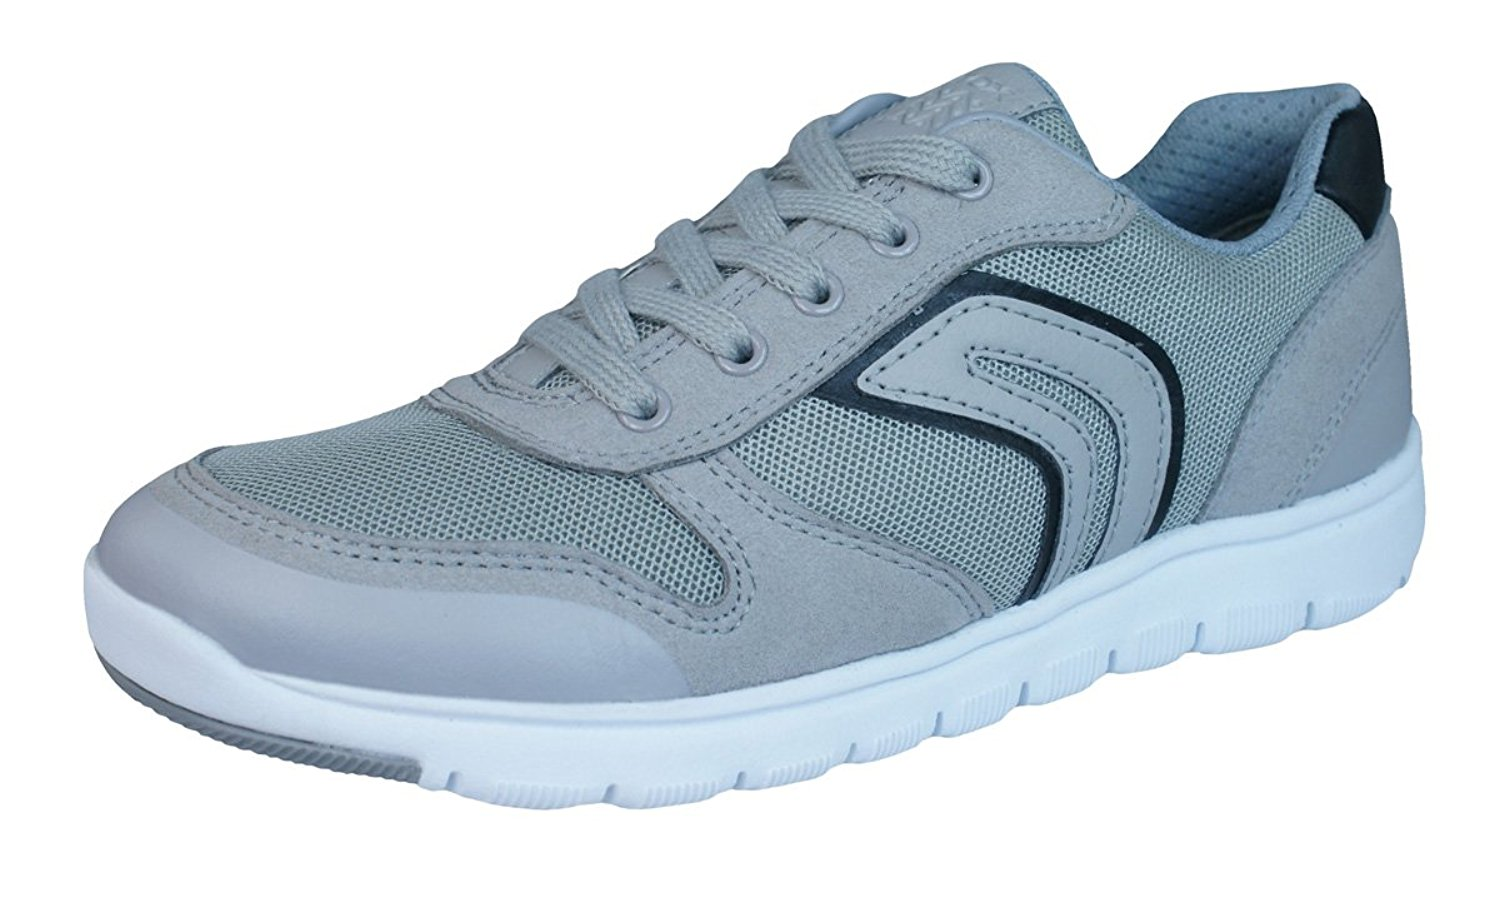 Geox J Xunday B Boys Sneakers / Shoes